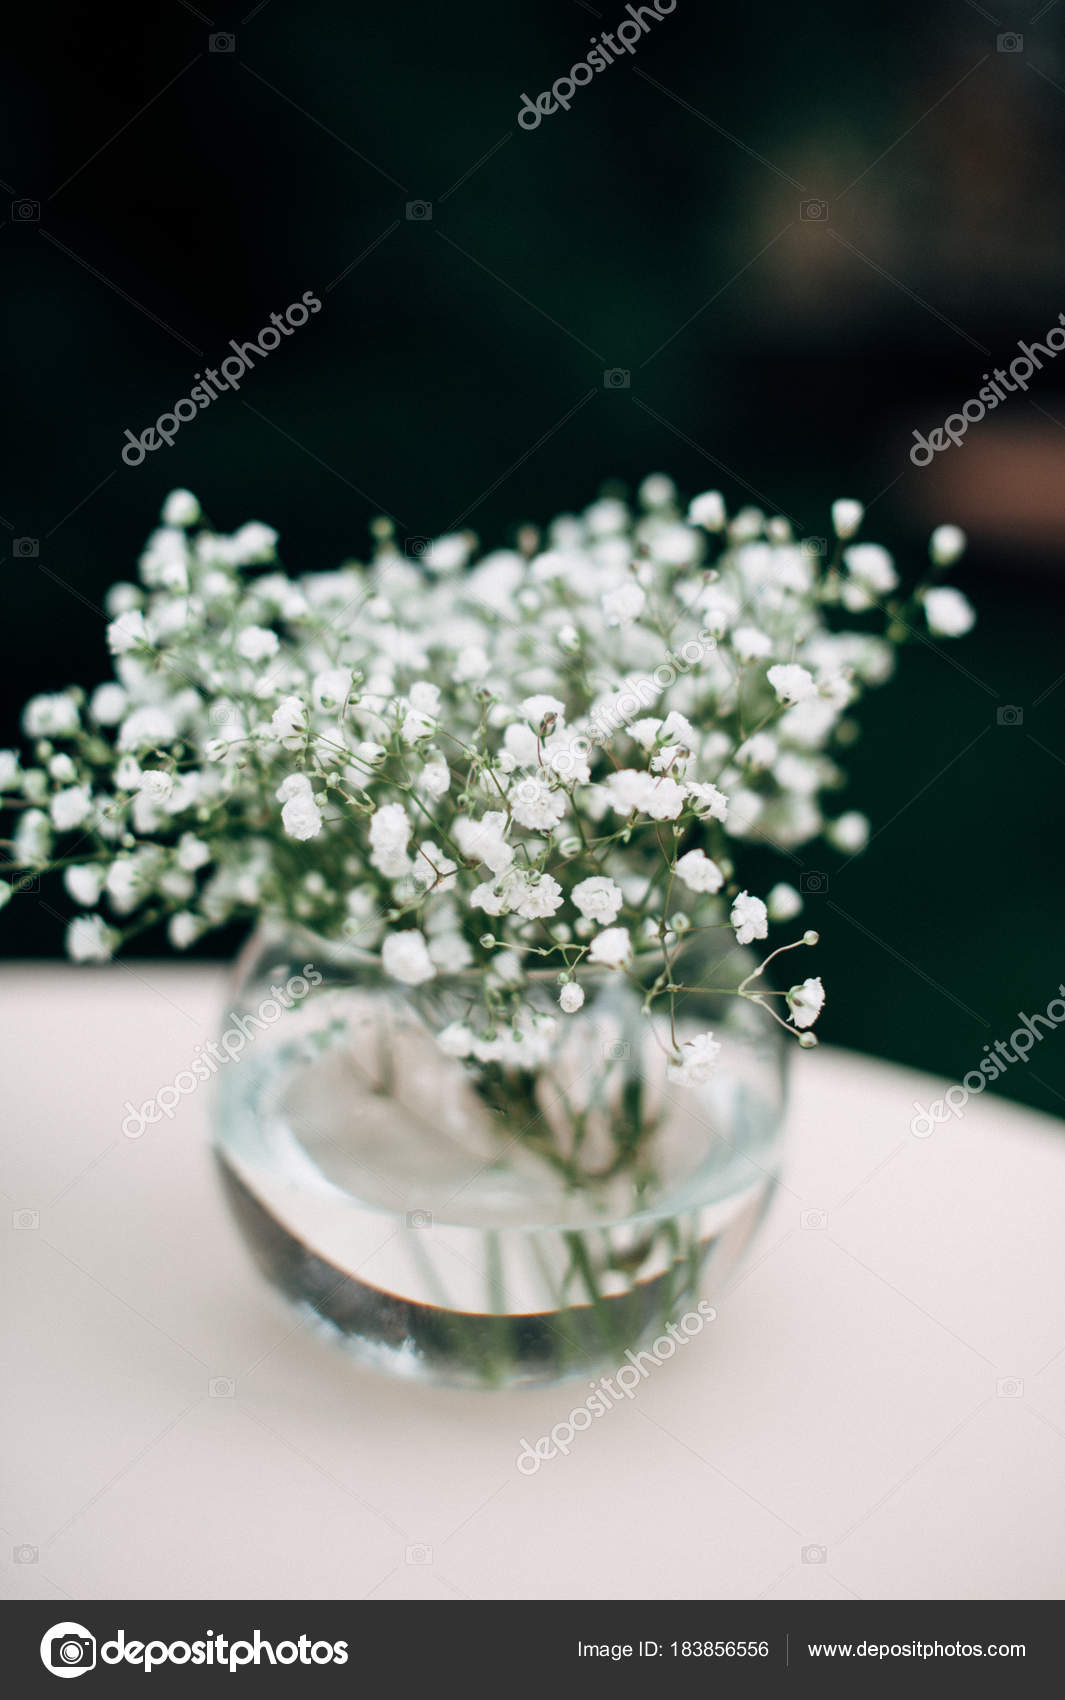 Name Of Small White Flowers In Bouquets - Flowers Healthy